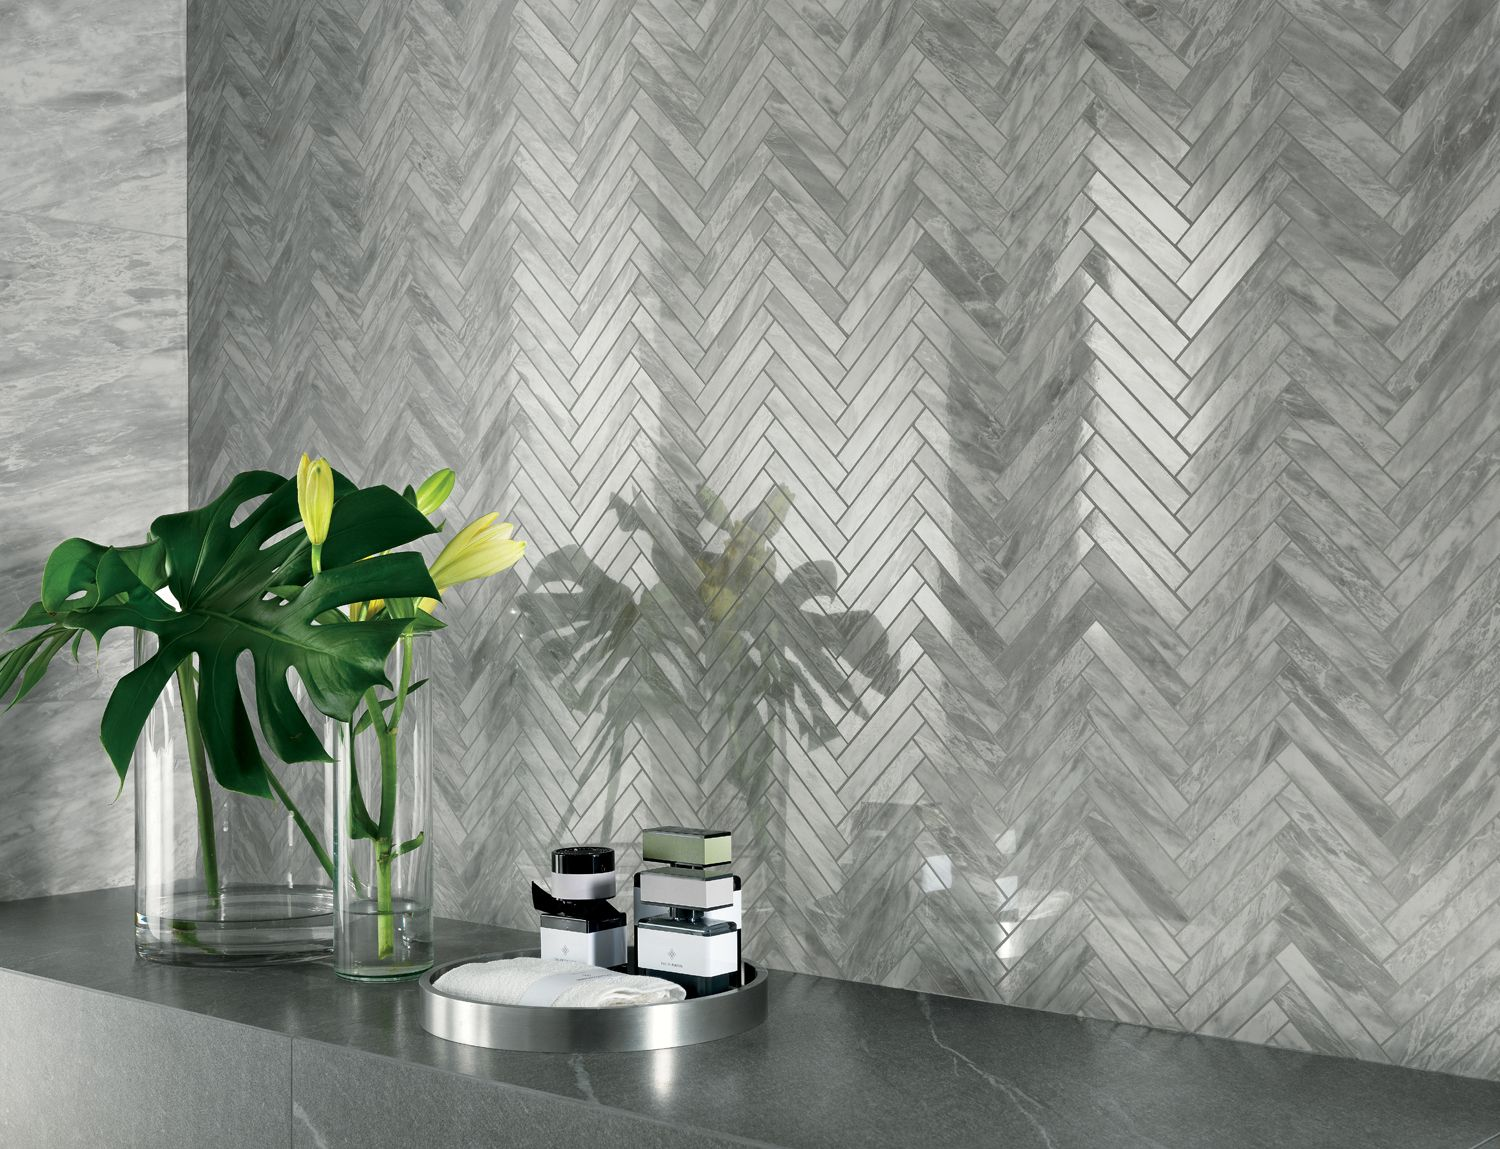 Design Evo Tiles Pin By Minoli The Surface Within On Minoli Tiles